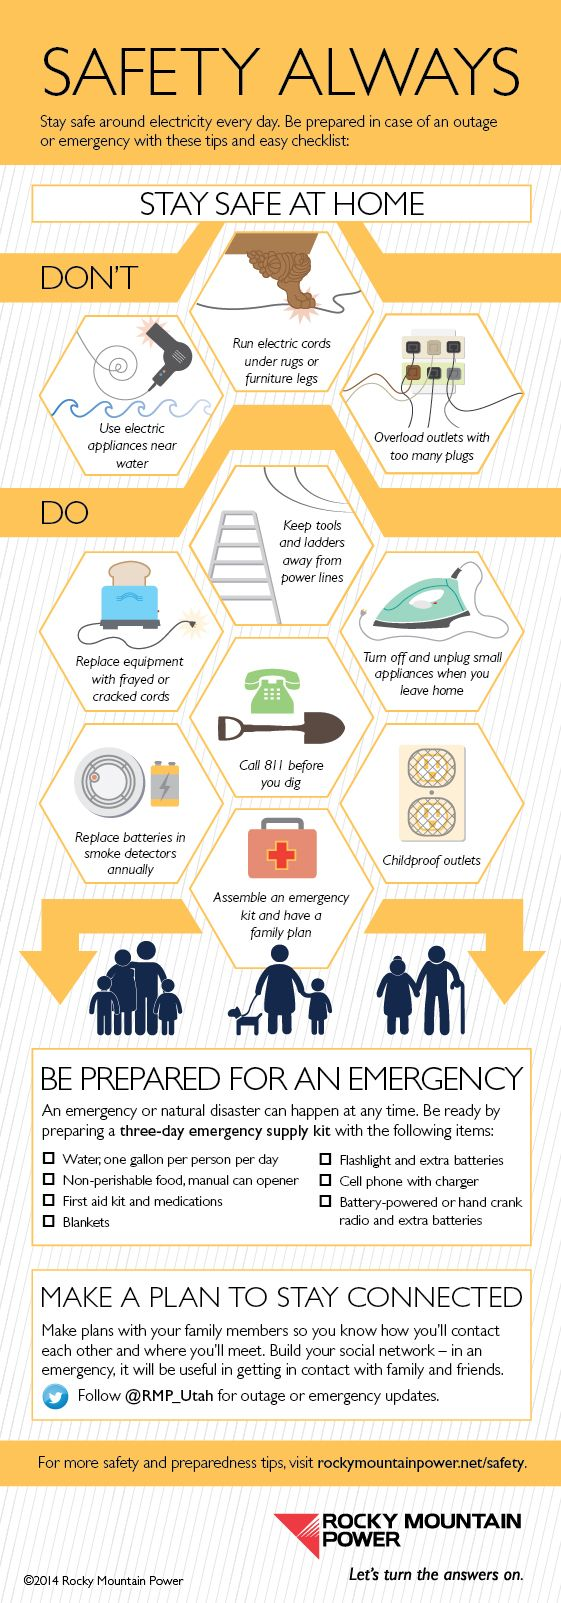 September is National Preparedness Month! Check out Rocky Mountain Power's infographic for a list of safety reminders and three-day emergency supplies.